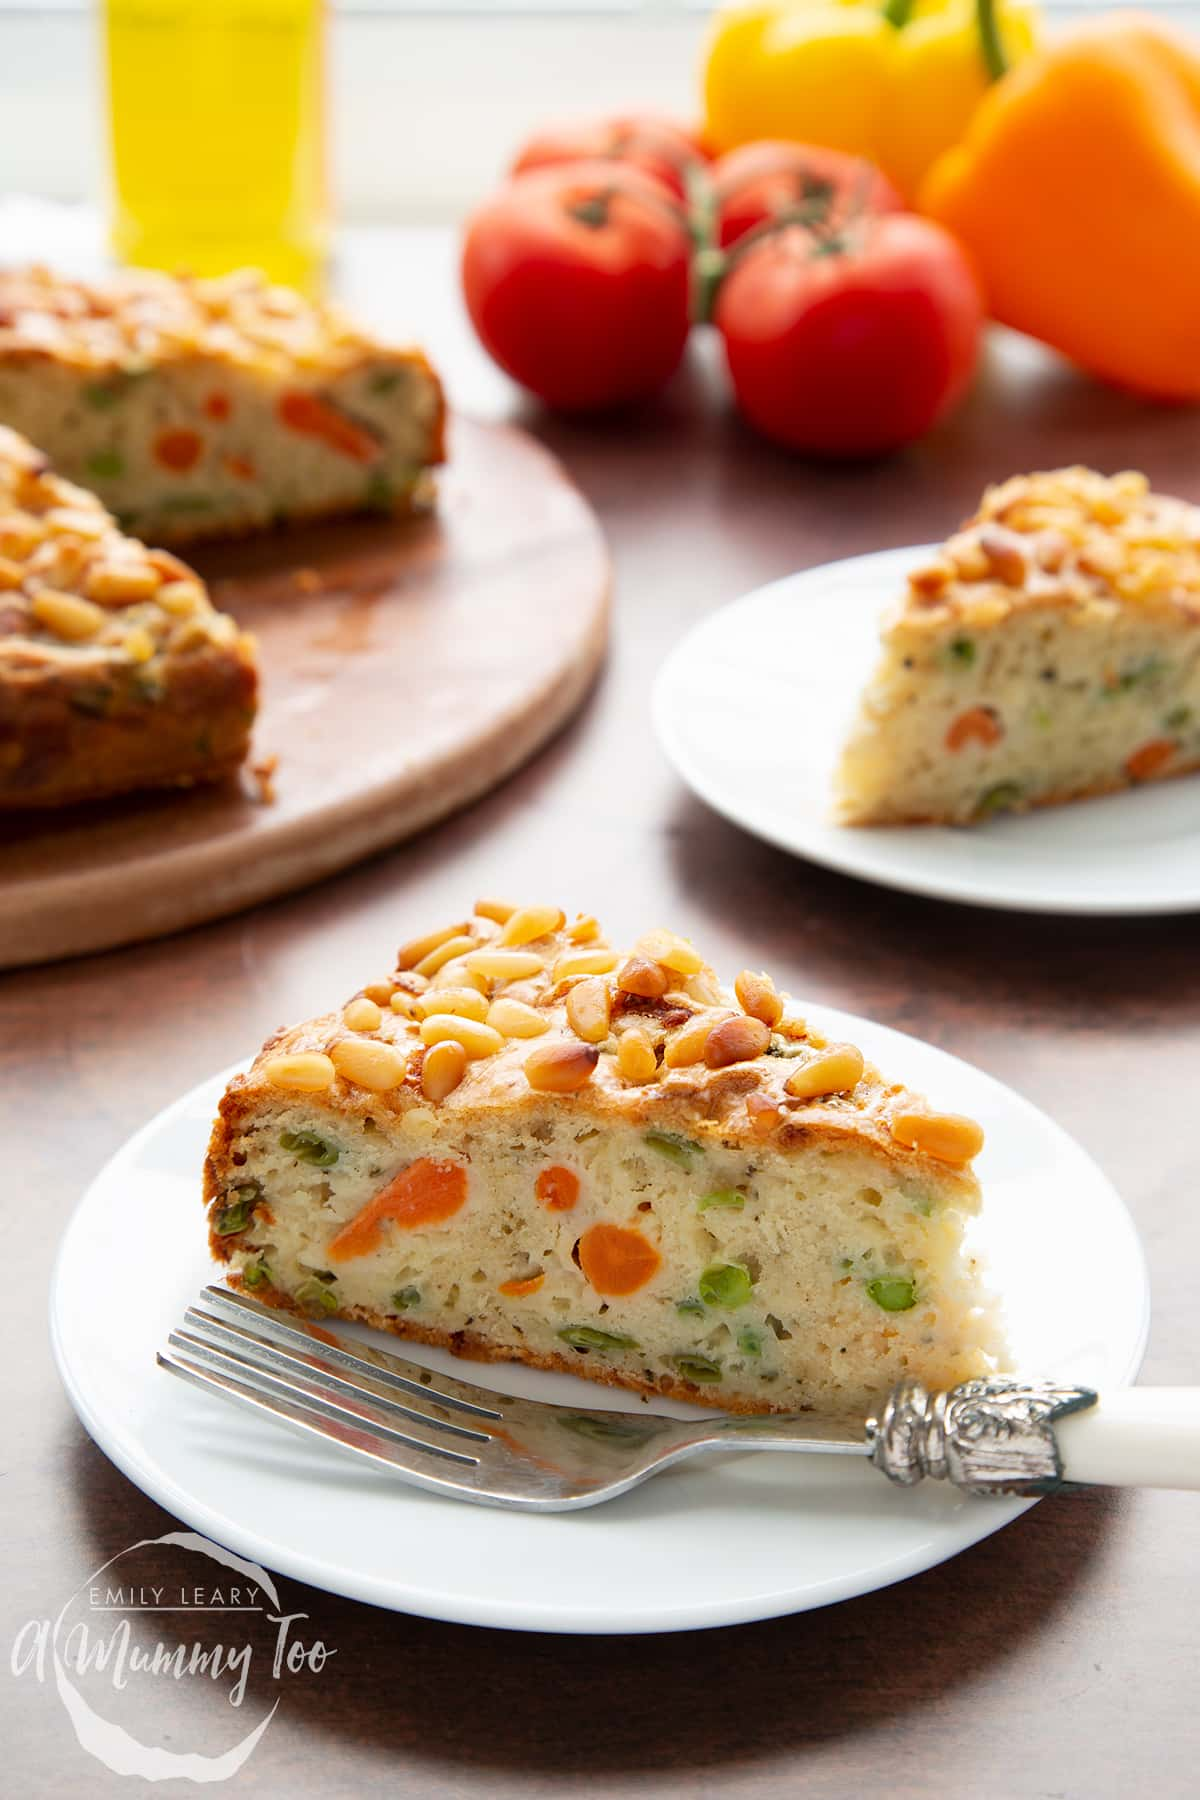 A slice of vegetable cake on a white plate with a fork. There is more cake in the background.